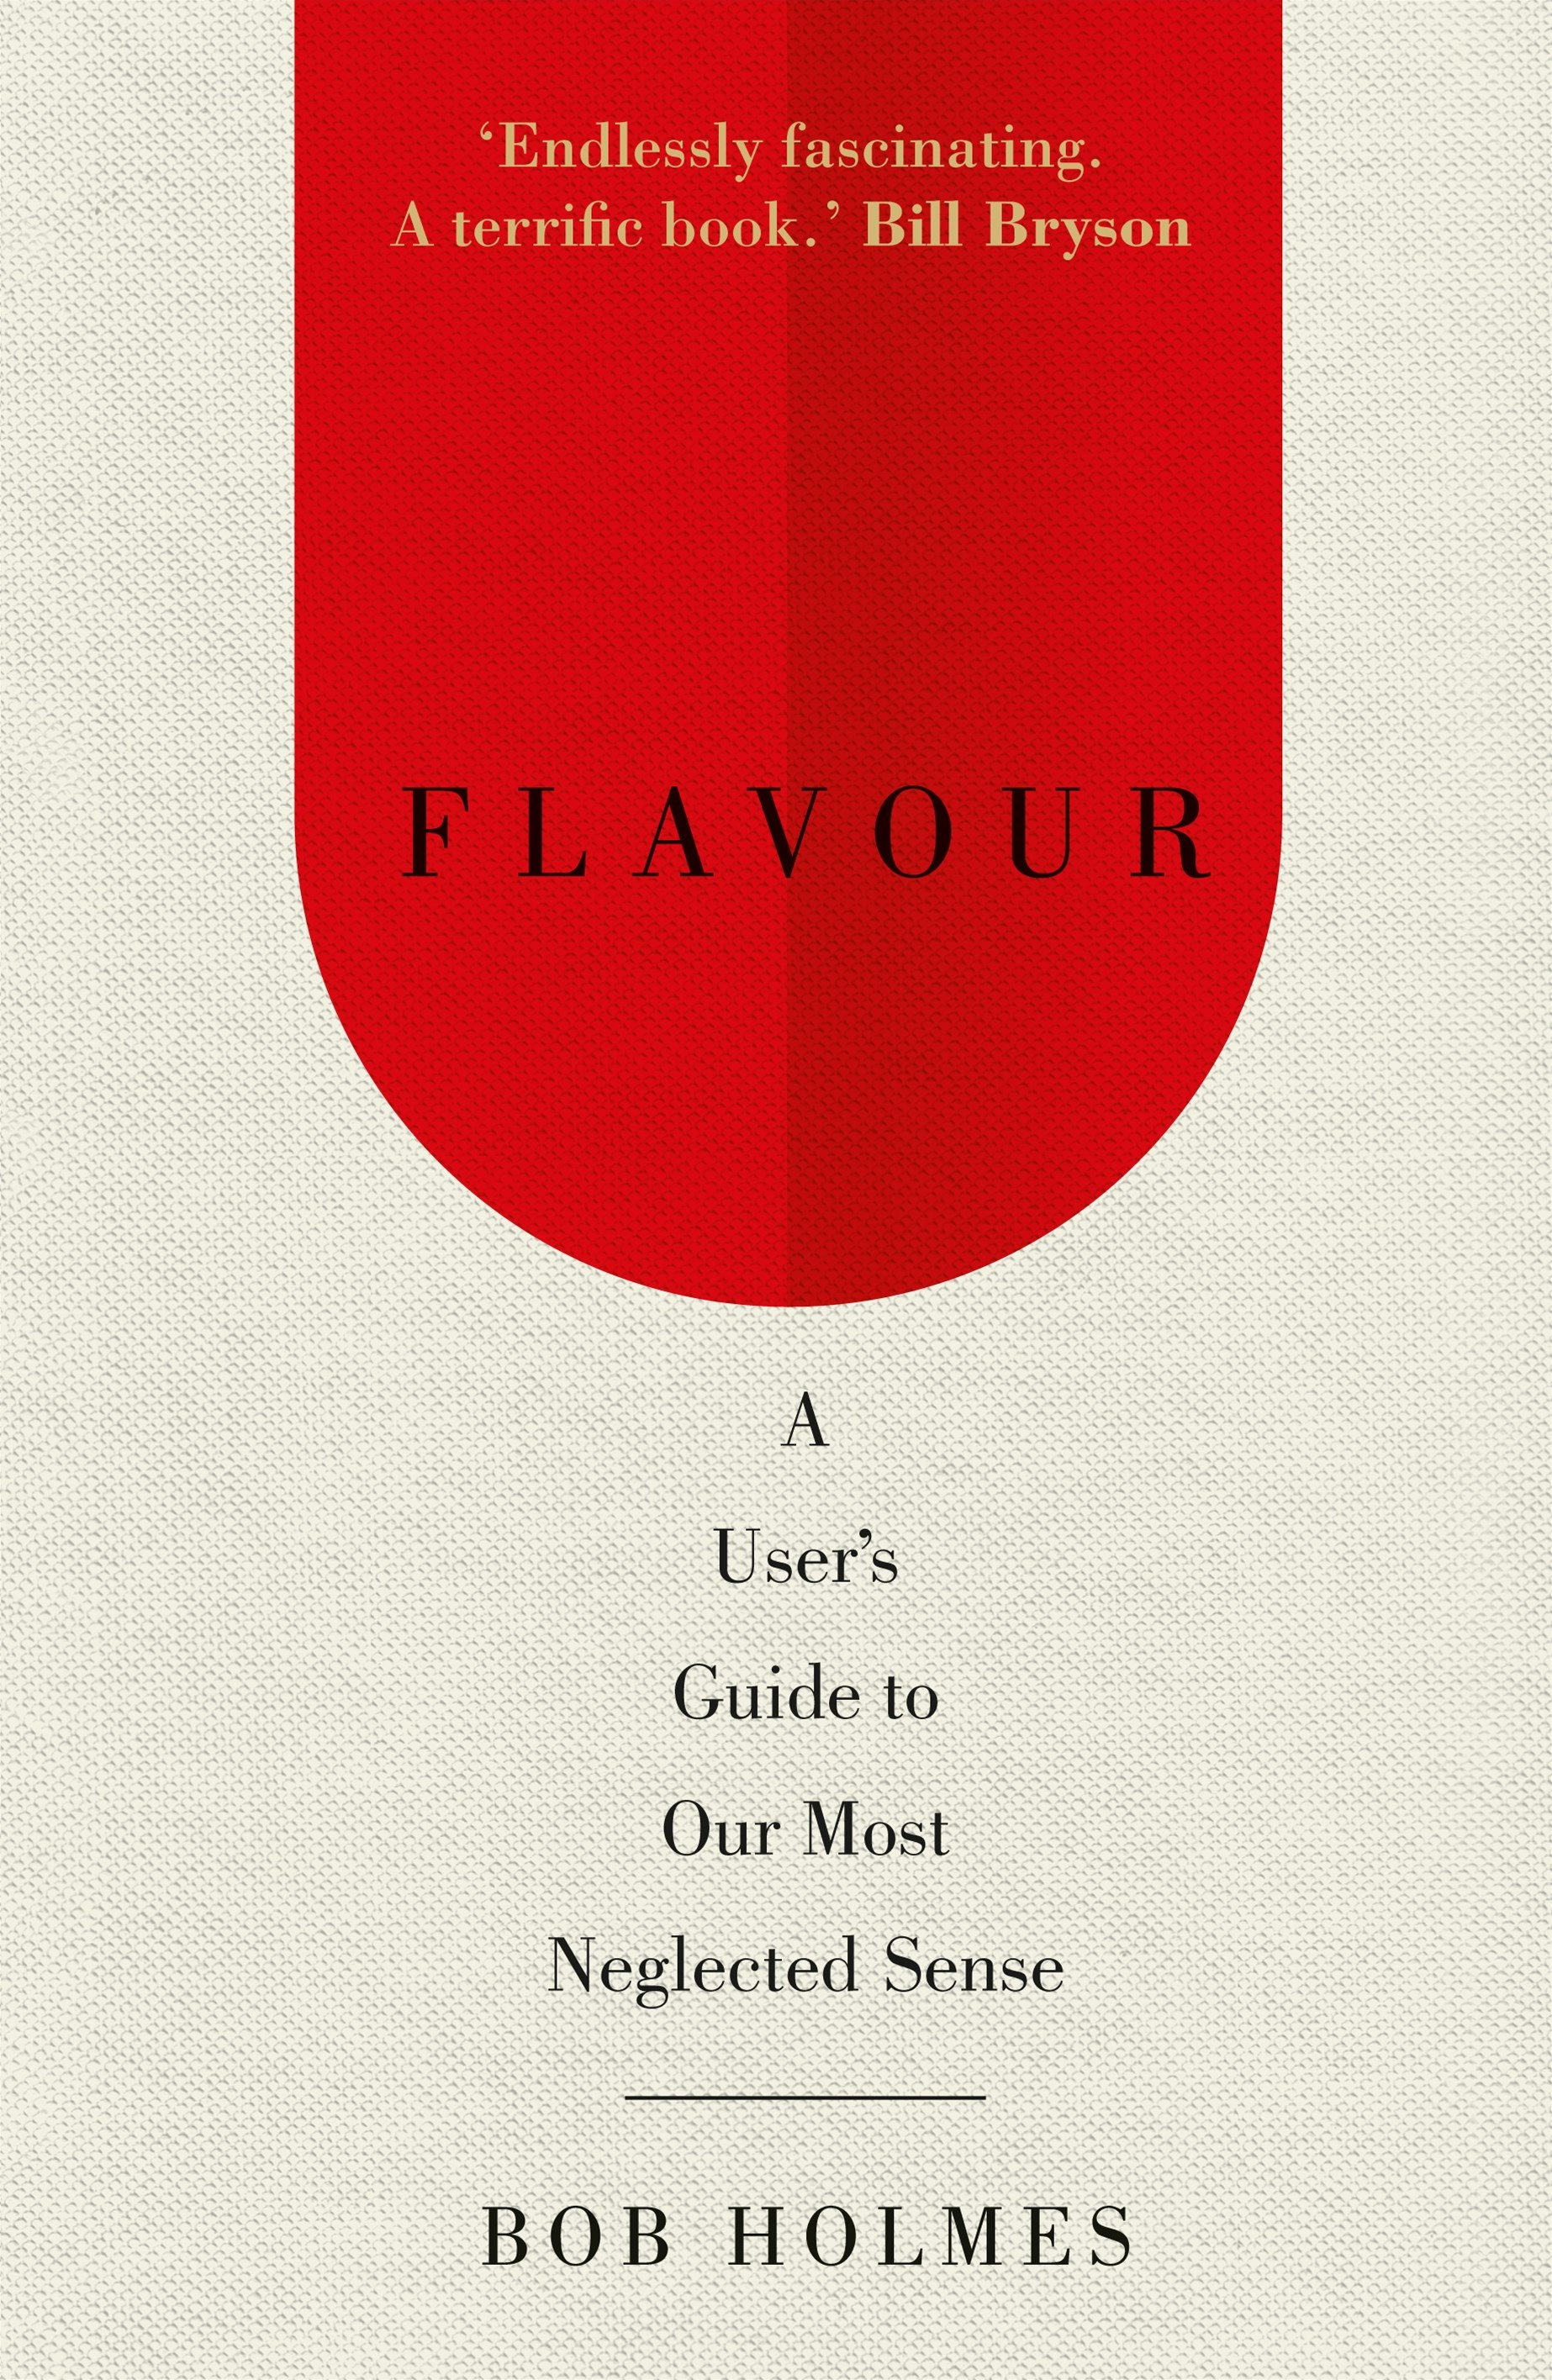 Flavour: A User's Guide to Our Most Neglected Sense